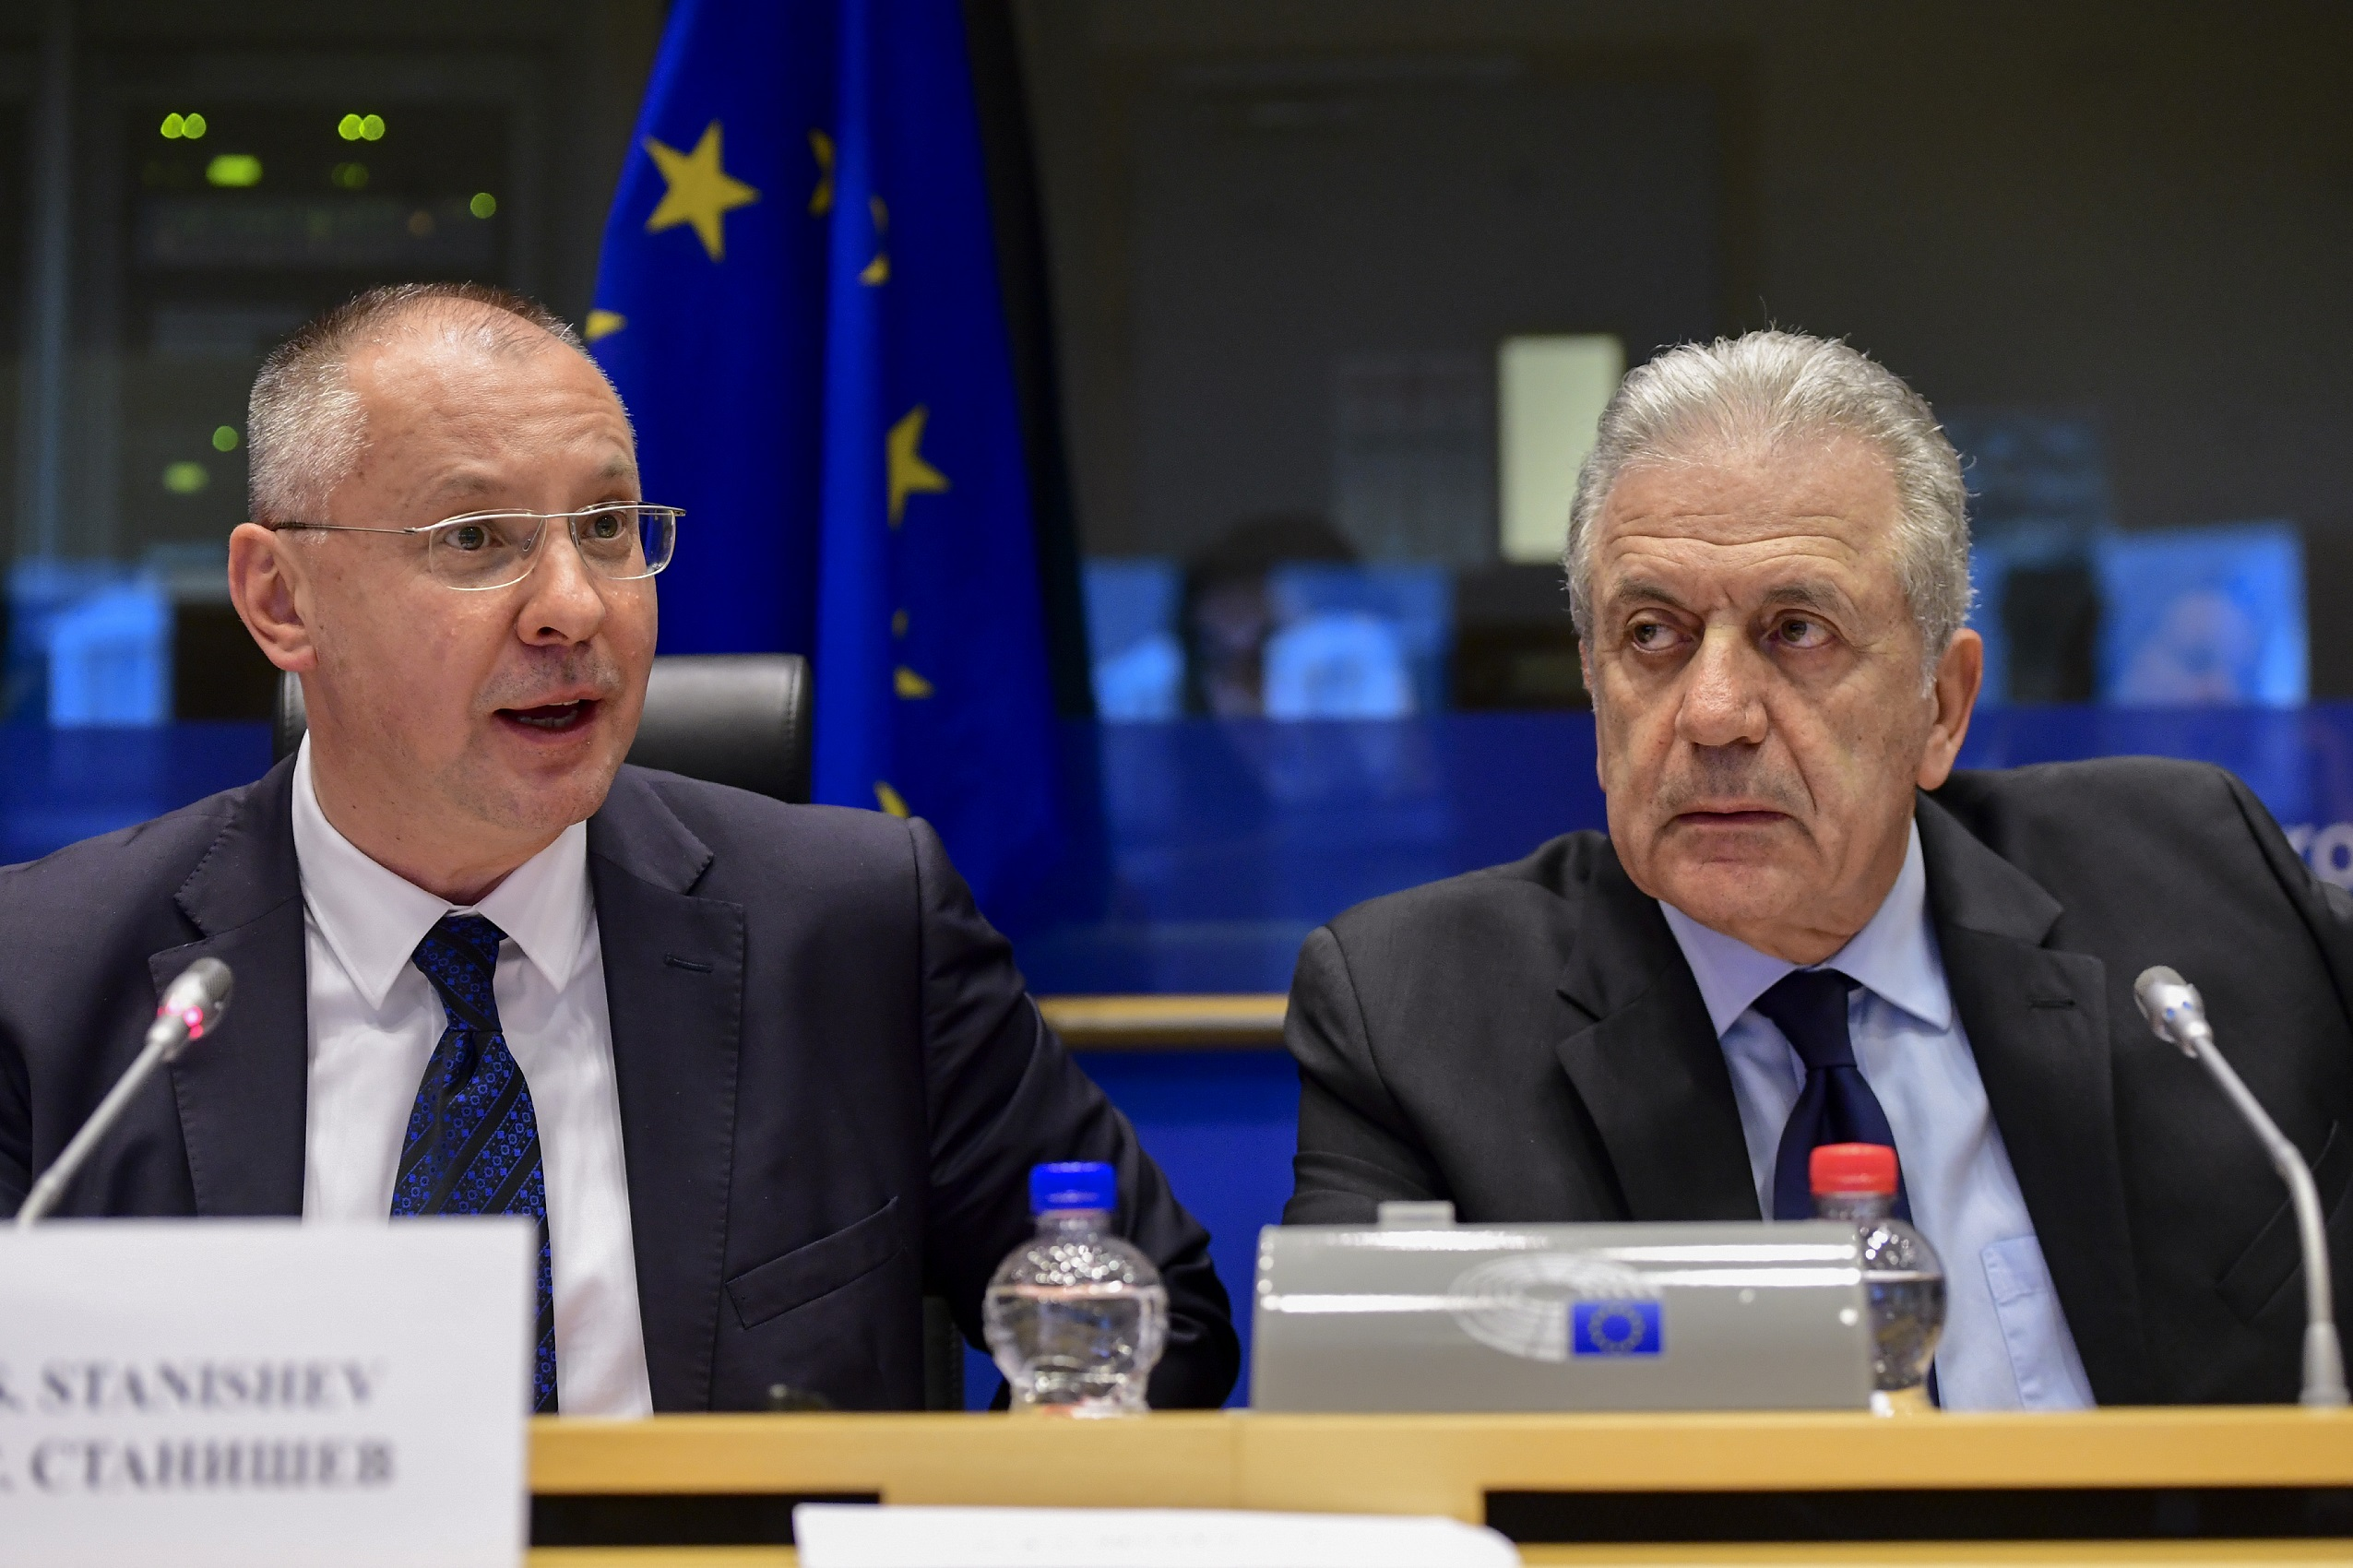 LIBE Committee hearing - ' The future of the Schengen area: internal management and governance, information systems and territorial scope '